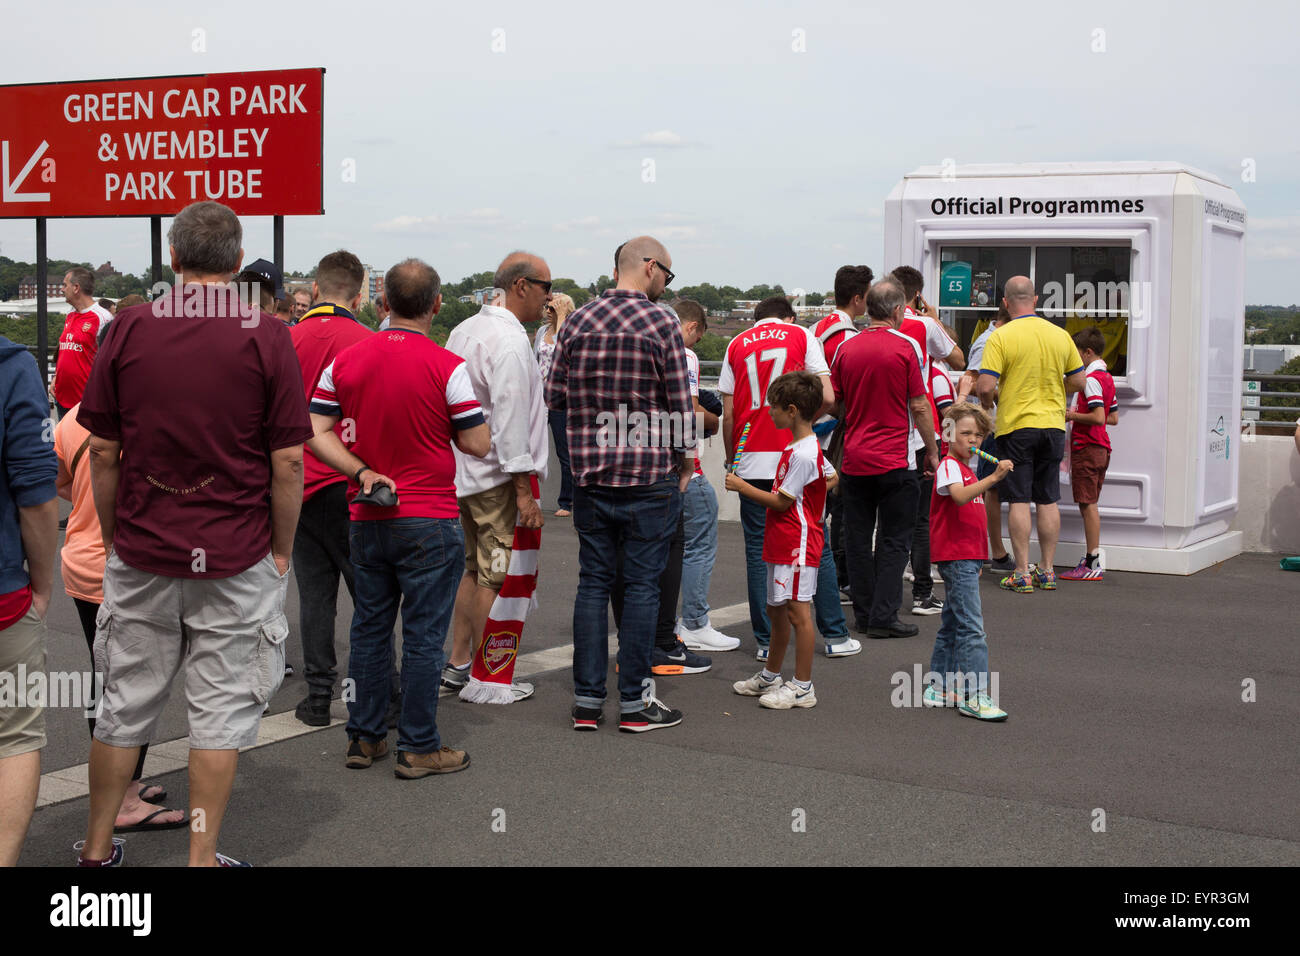 Arsenal football supporters queuing to buy official programmes - Stock Image